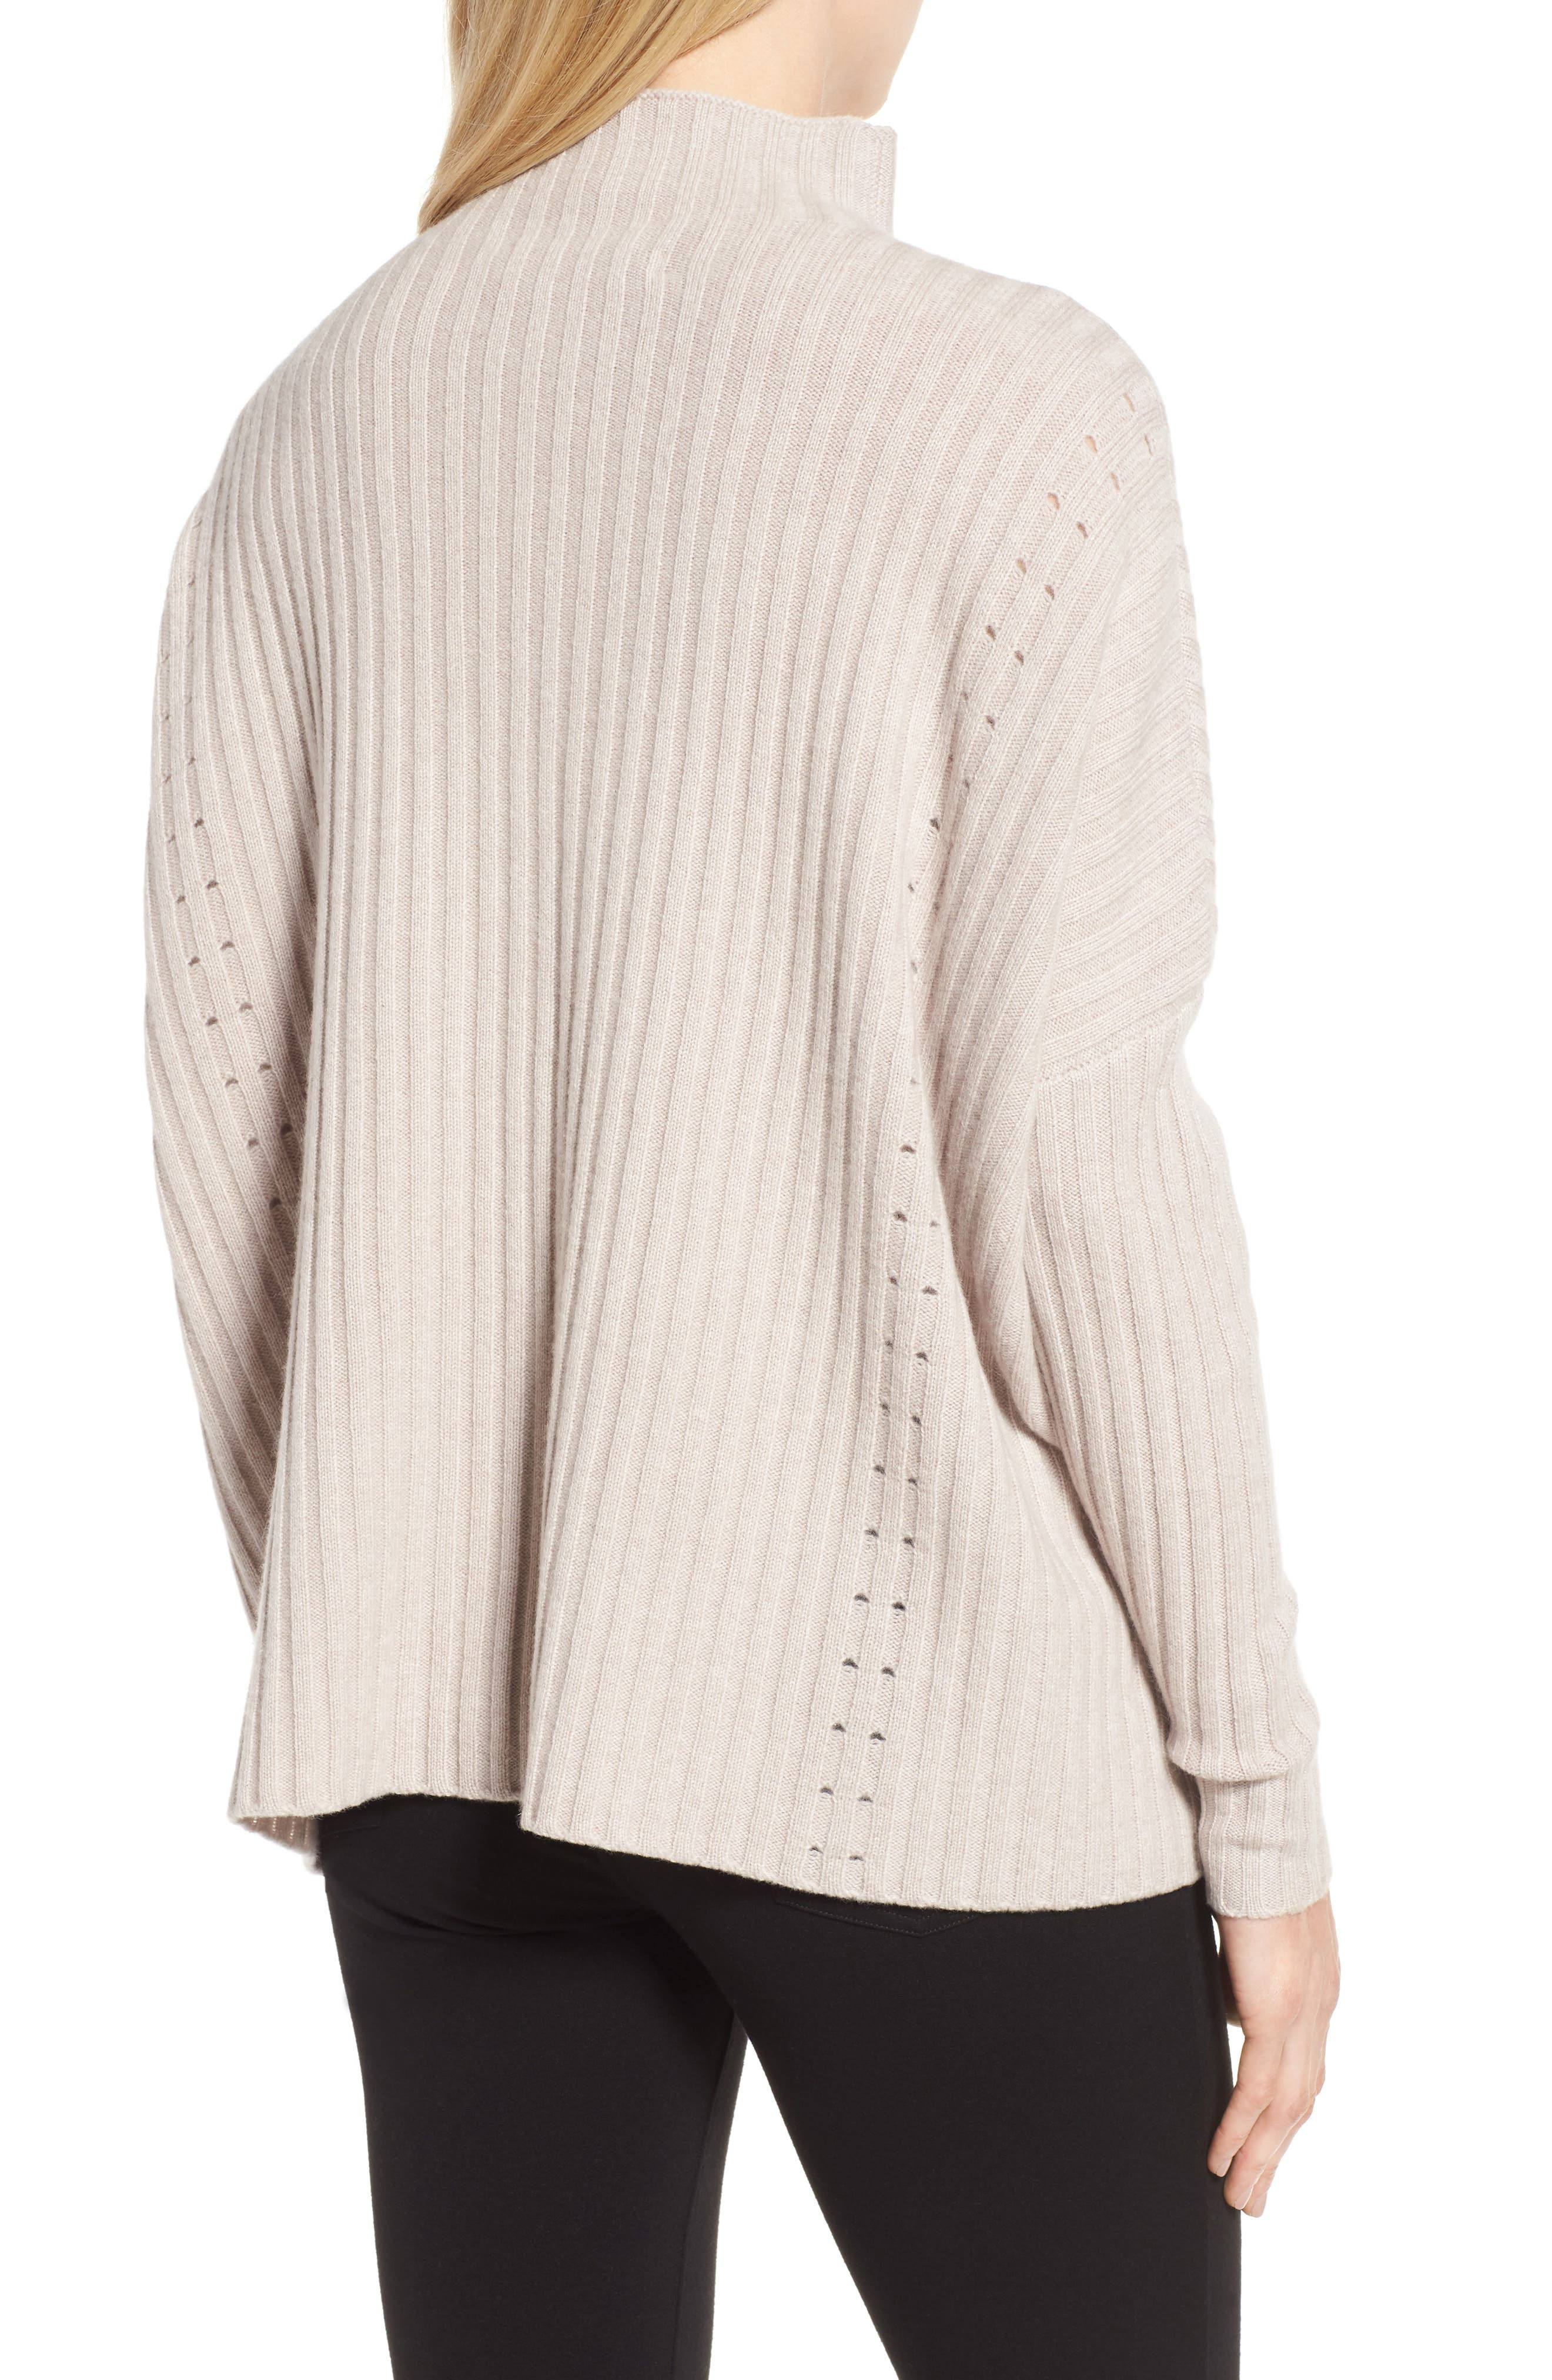 Boxy Ribbed Cashmere Sweater,                             Alternate thumbnail 2, color,                             270